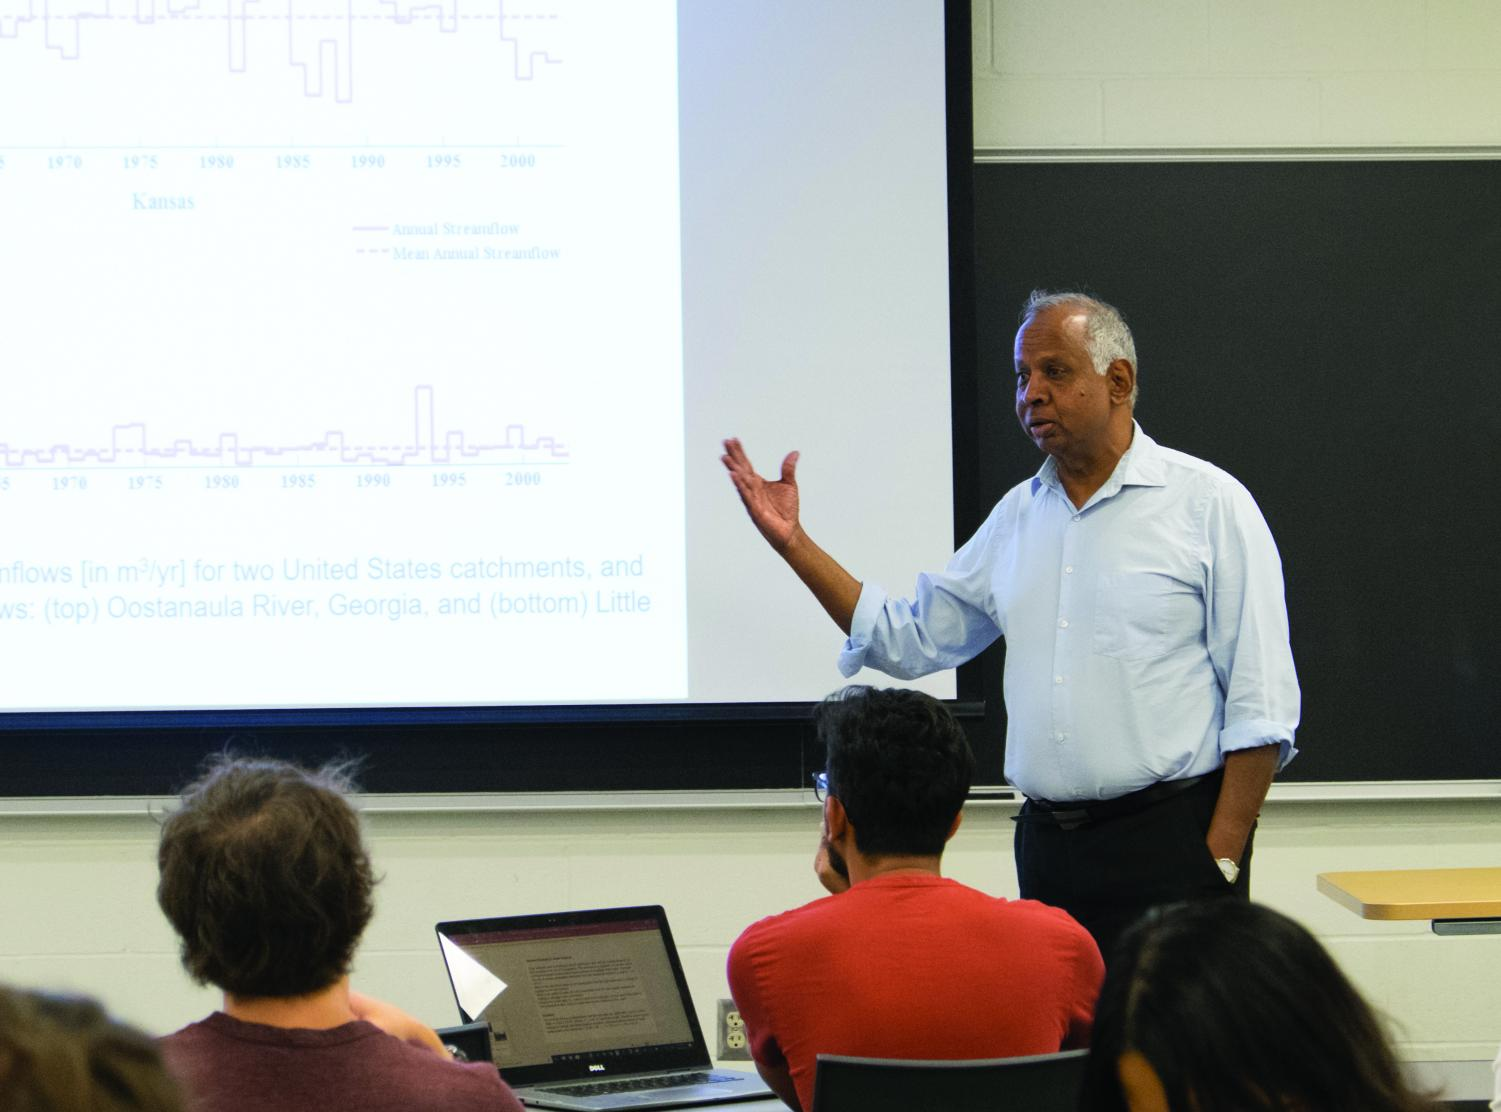 Professor Murugesu Sivapalan gives lecture to students in the Newmark Civil Engineering Laboratory on Wednesday. Sivapalan was awarded the Creativity Prize by the eighth Prince Sultan Bin Abdulaziz International Prize for Water for his work in flood prevention.